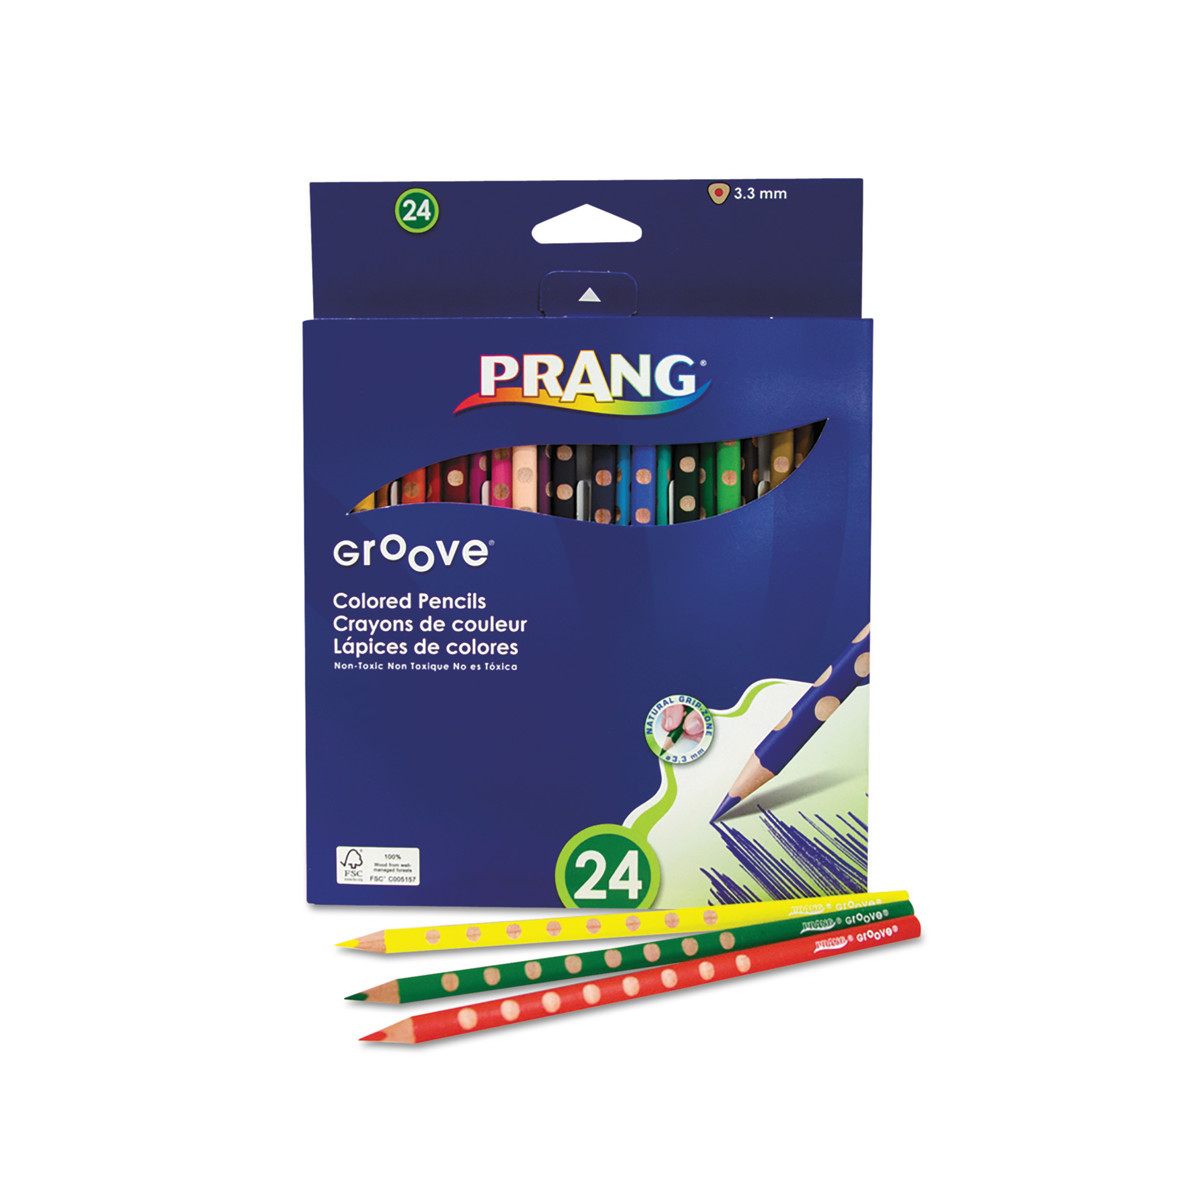 Grooved colored pencils with a triangular shape